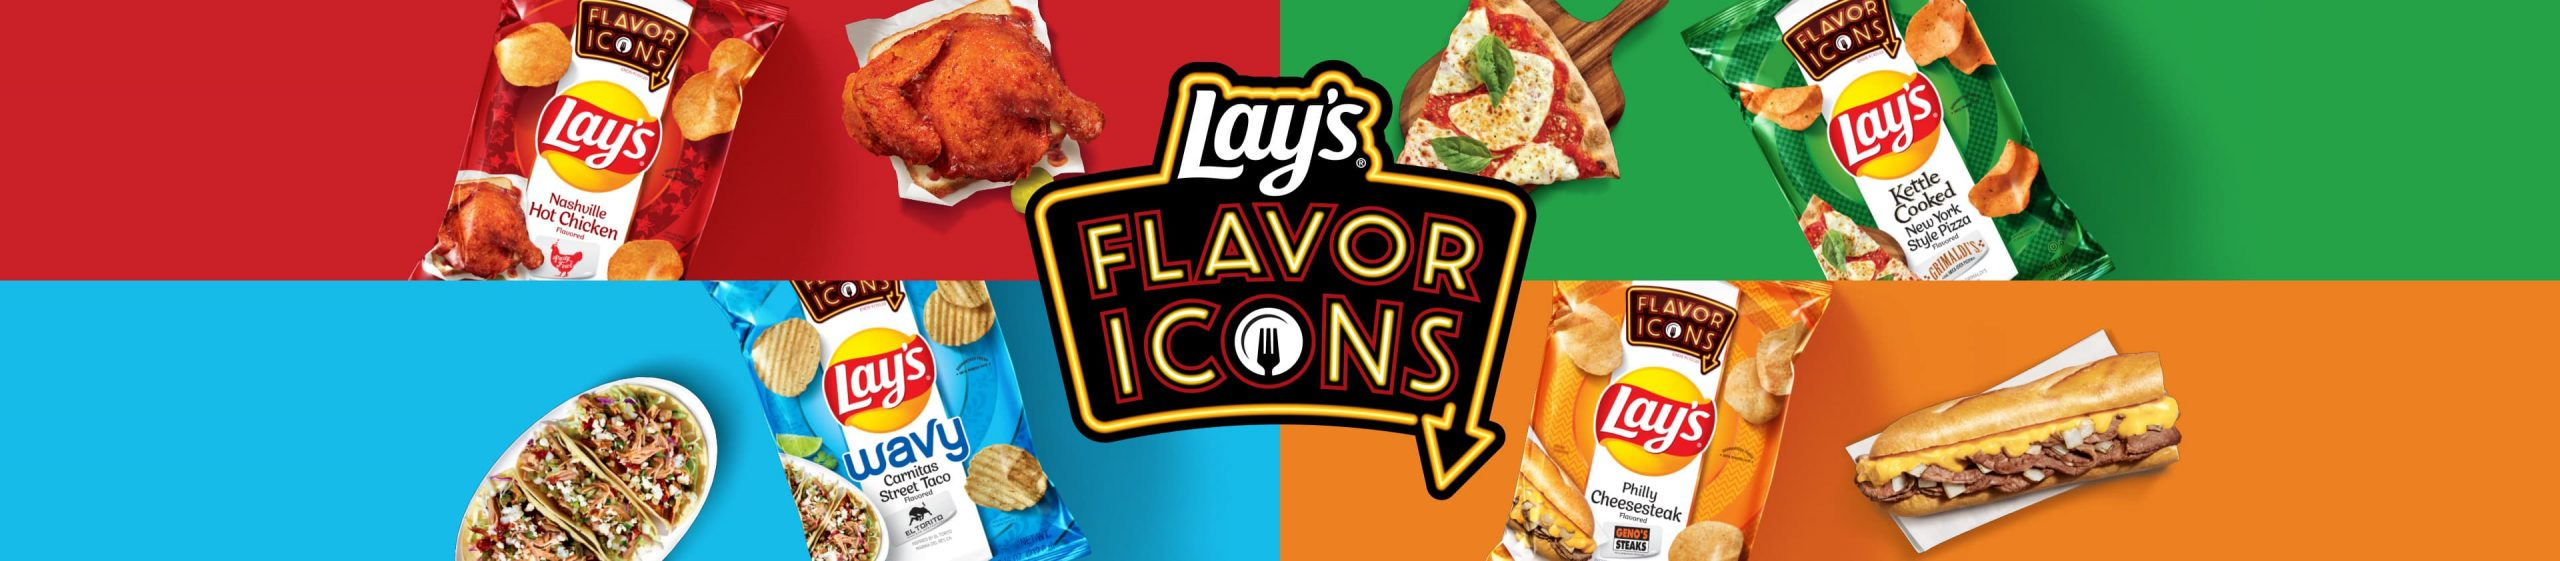 Lay's Flavor Icons Contest 2020